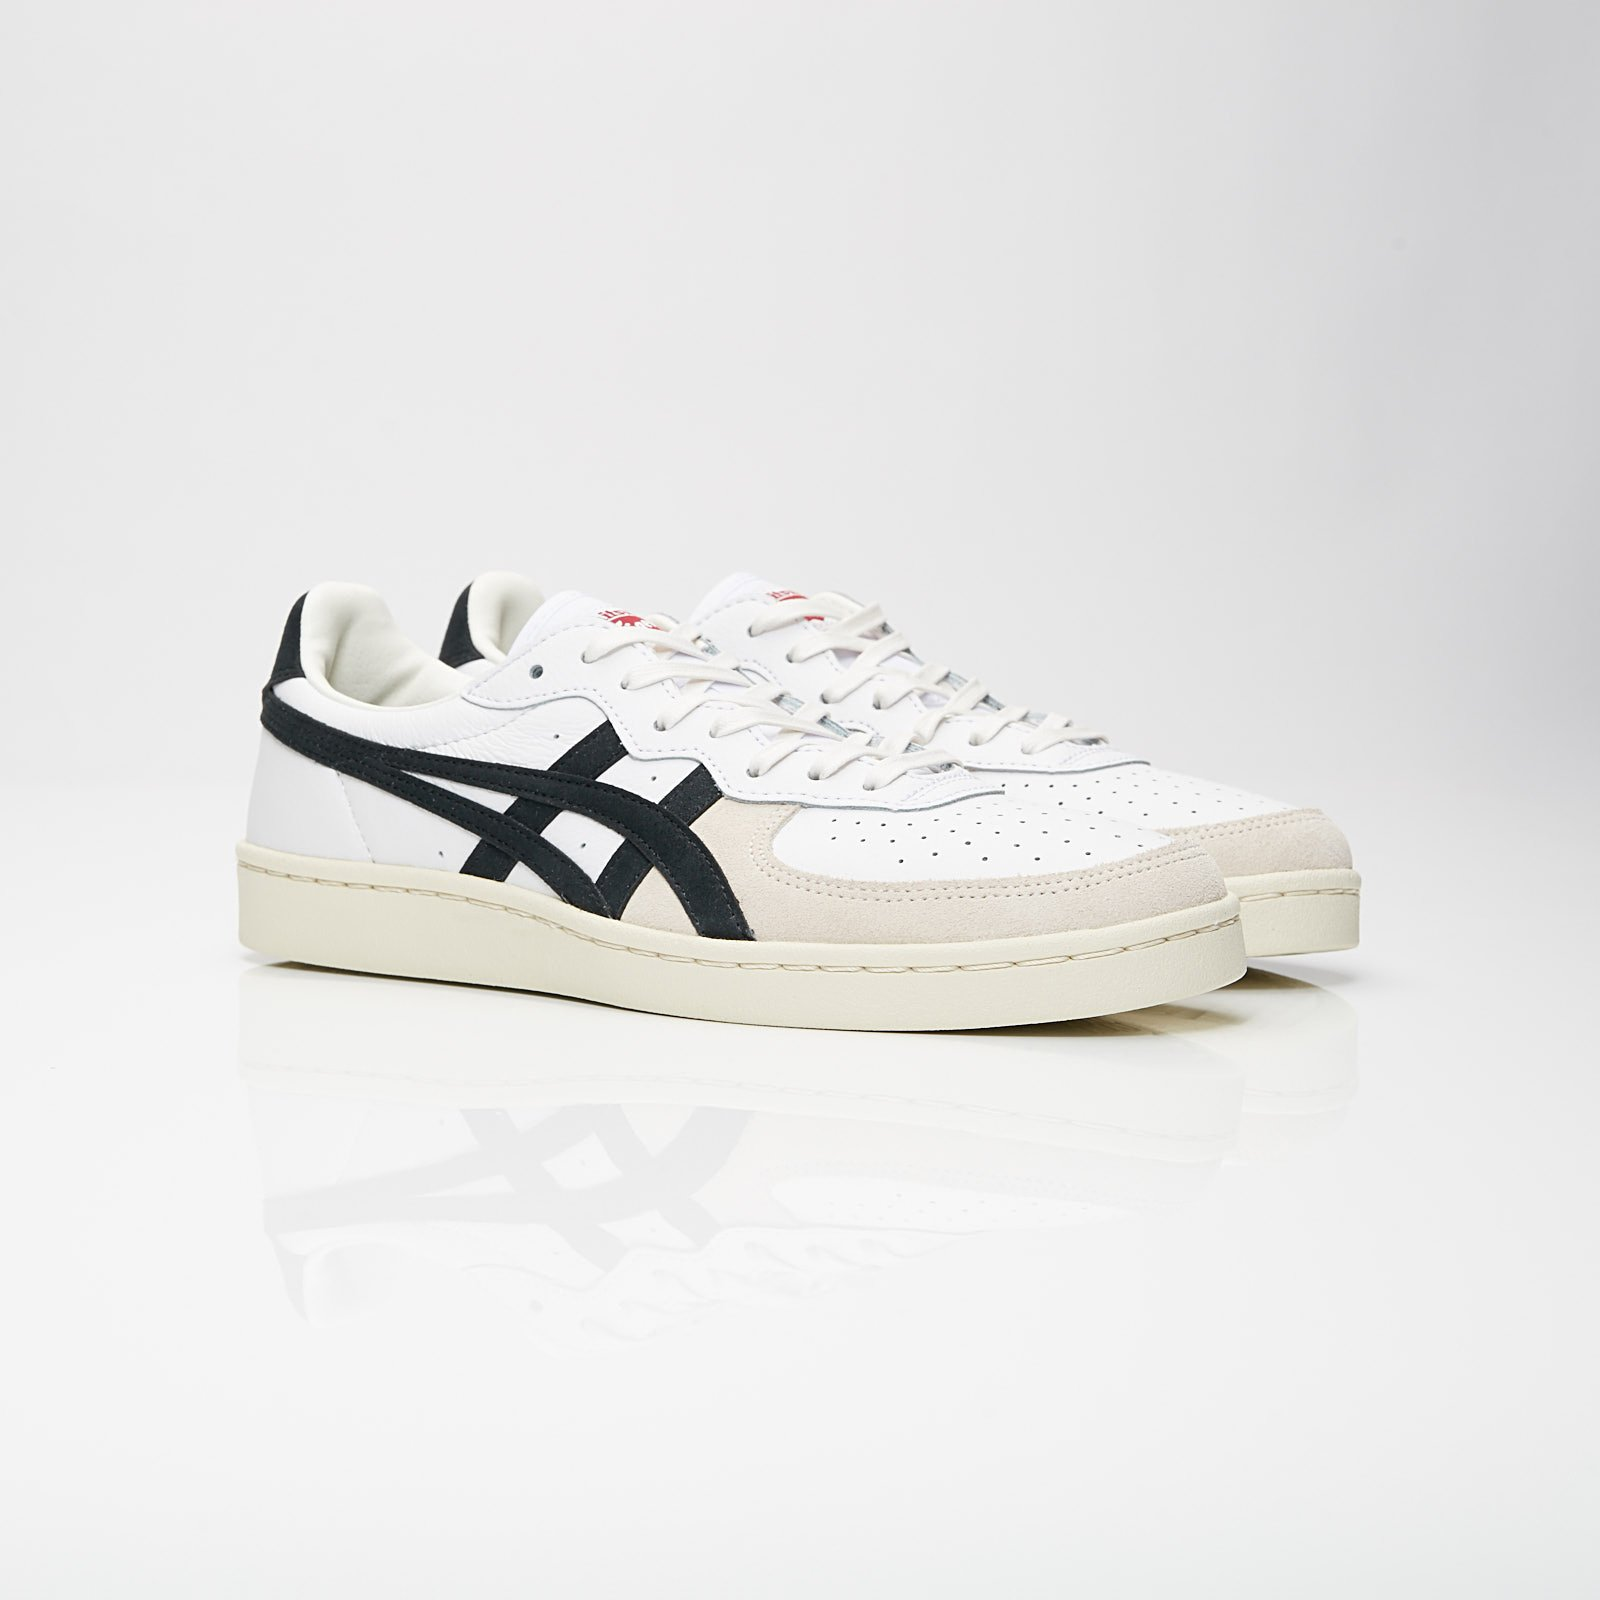 low cost 1af44 9e9a4 ASICS Tiger GSM - D5k2y-0190 - Sneakersnstuff | sneakers ...